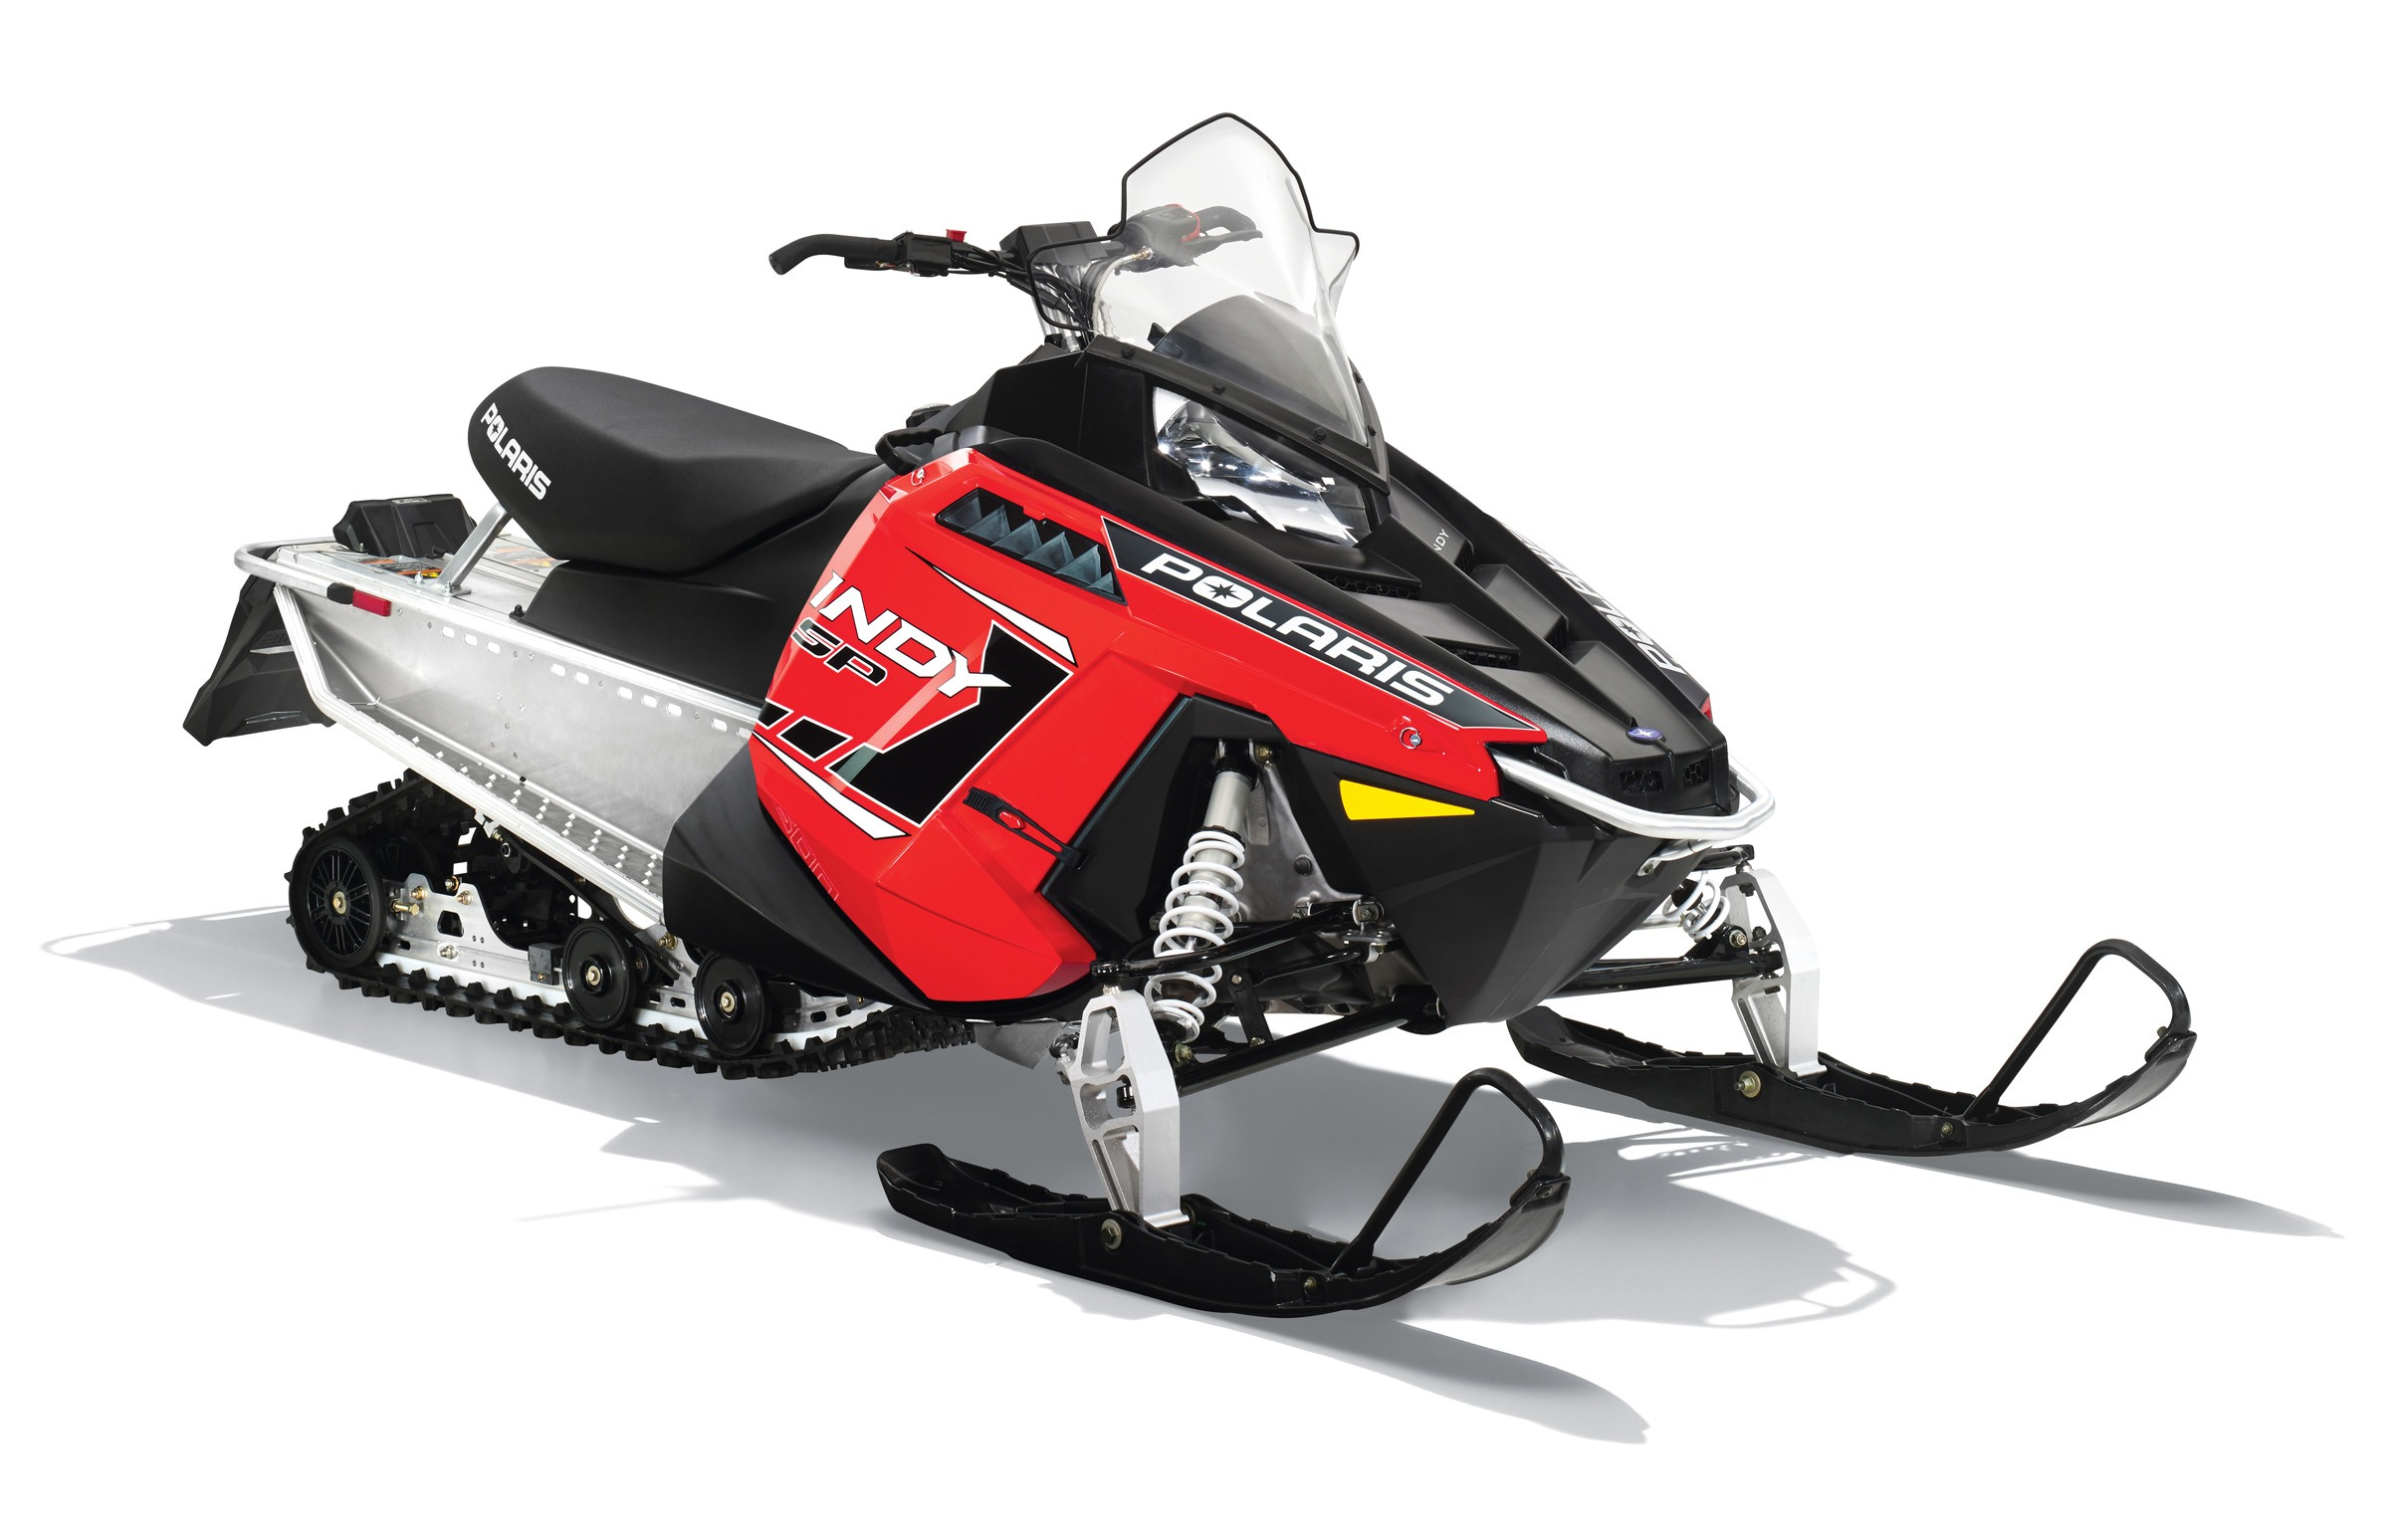 2016 Polaris 600 INDY SP in Lake Mills, Iowa